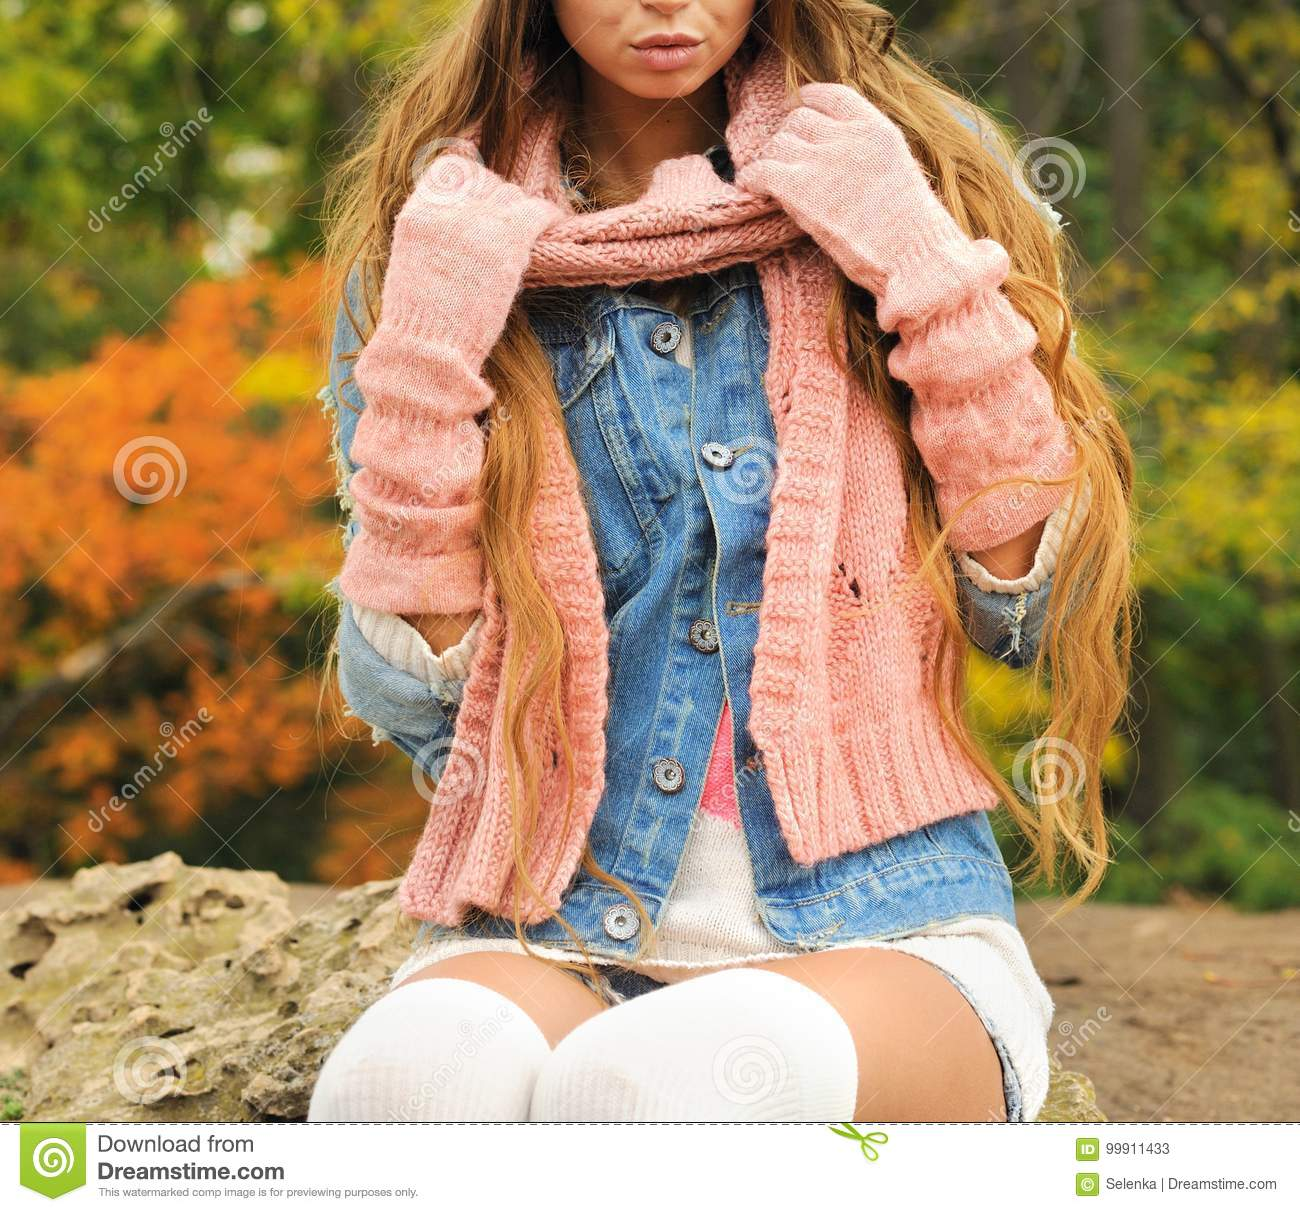 Woman posed outdoor dressed in knitted autumn outfit - warm gloves, scarf and knitted socks